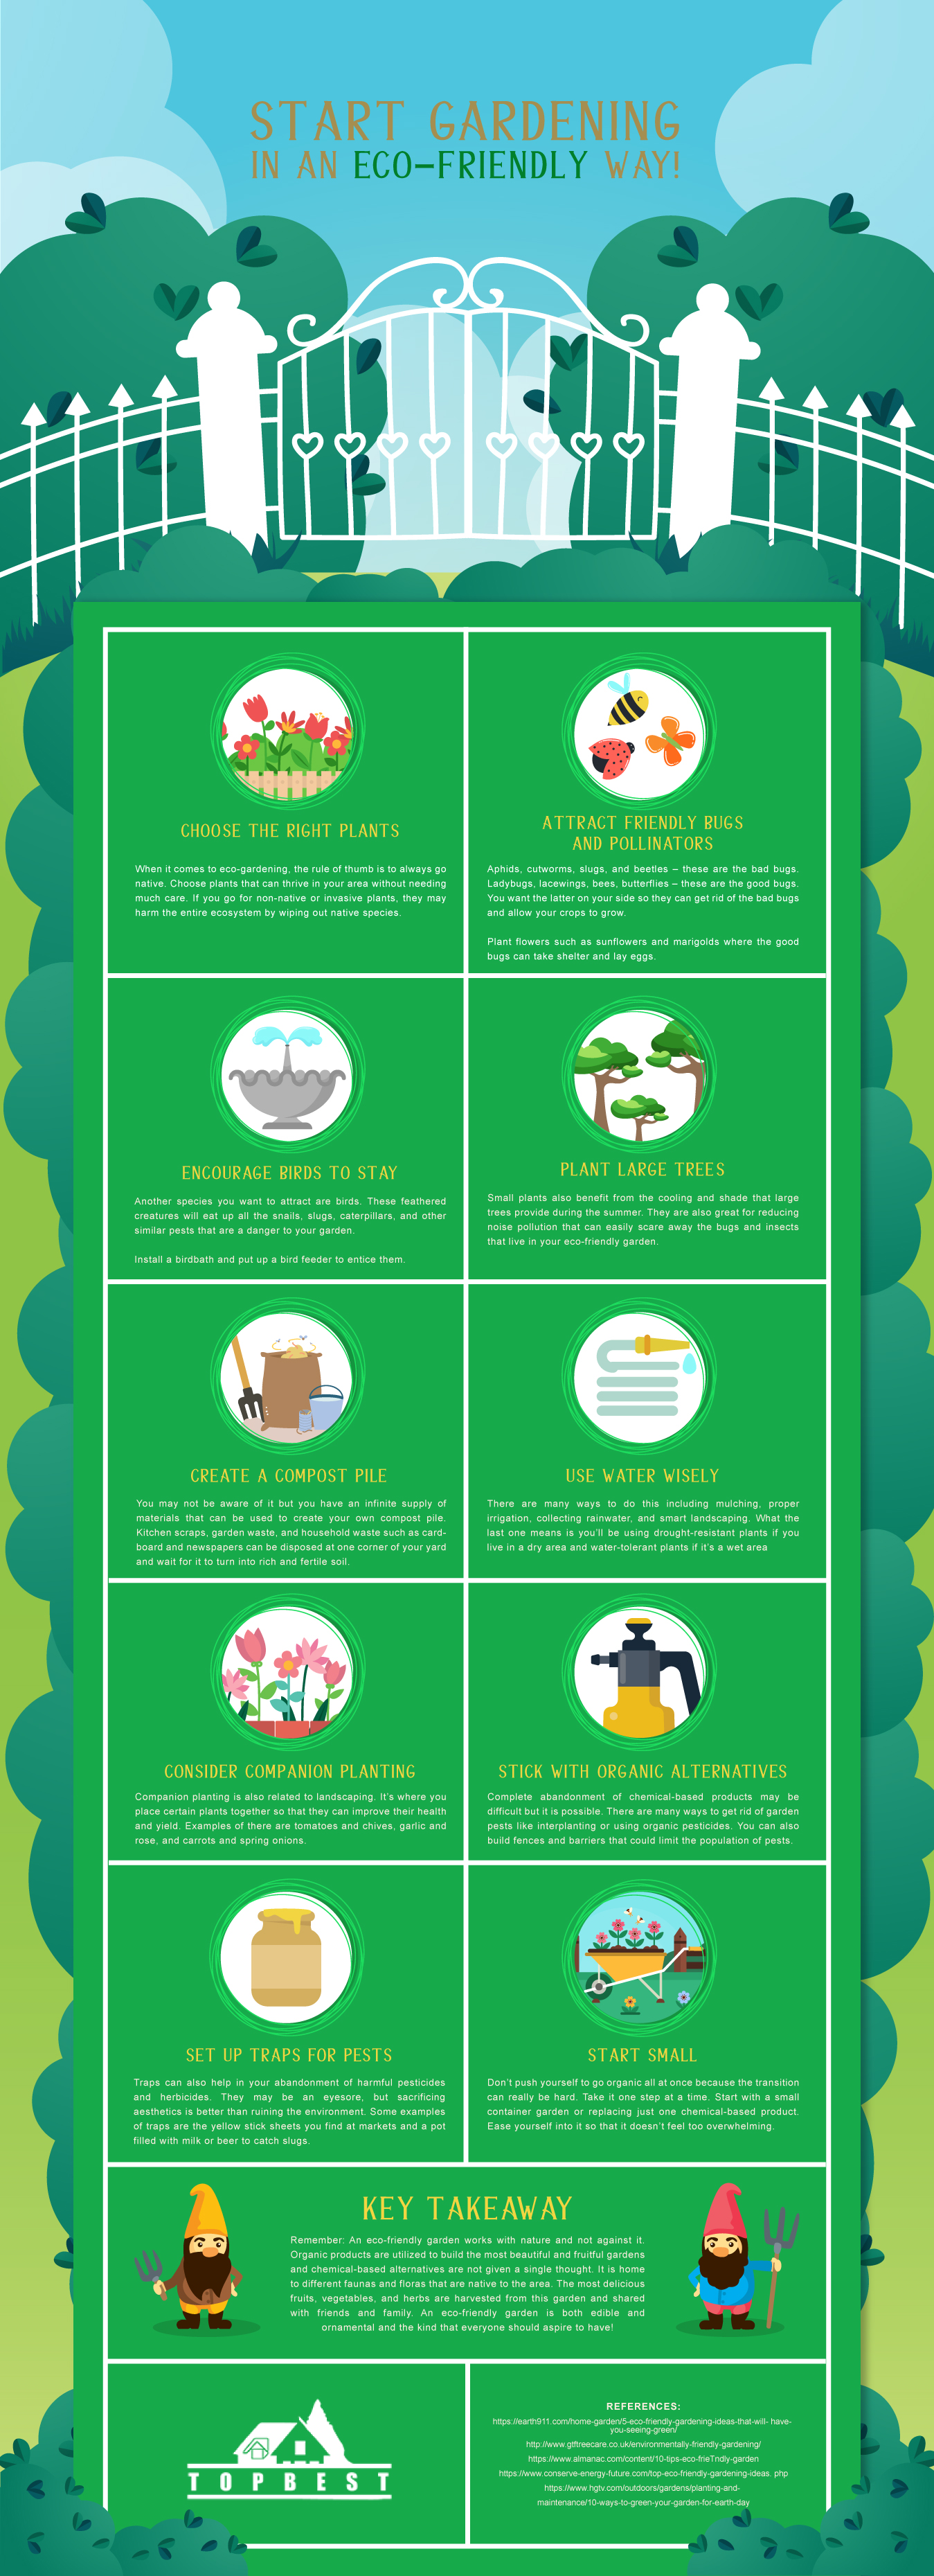 Start Gardening in an Eco-Friendly Way! infographic